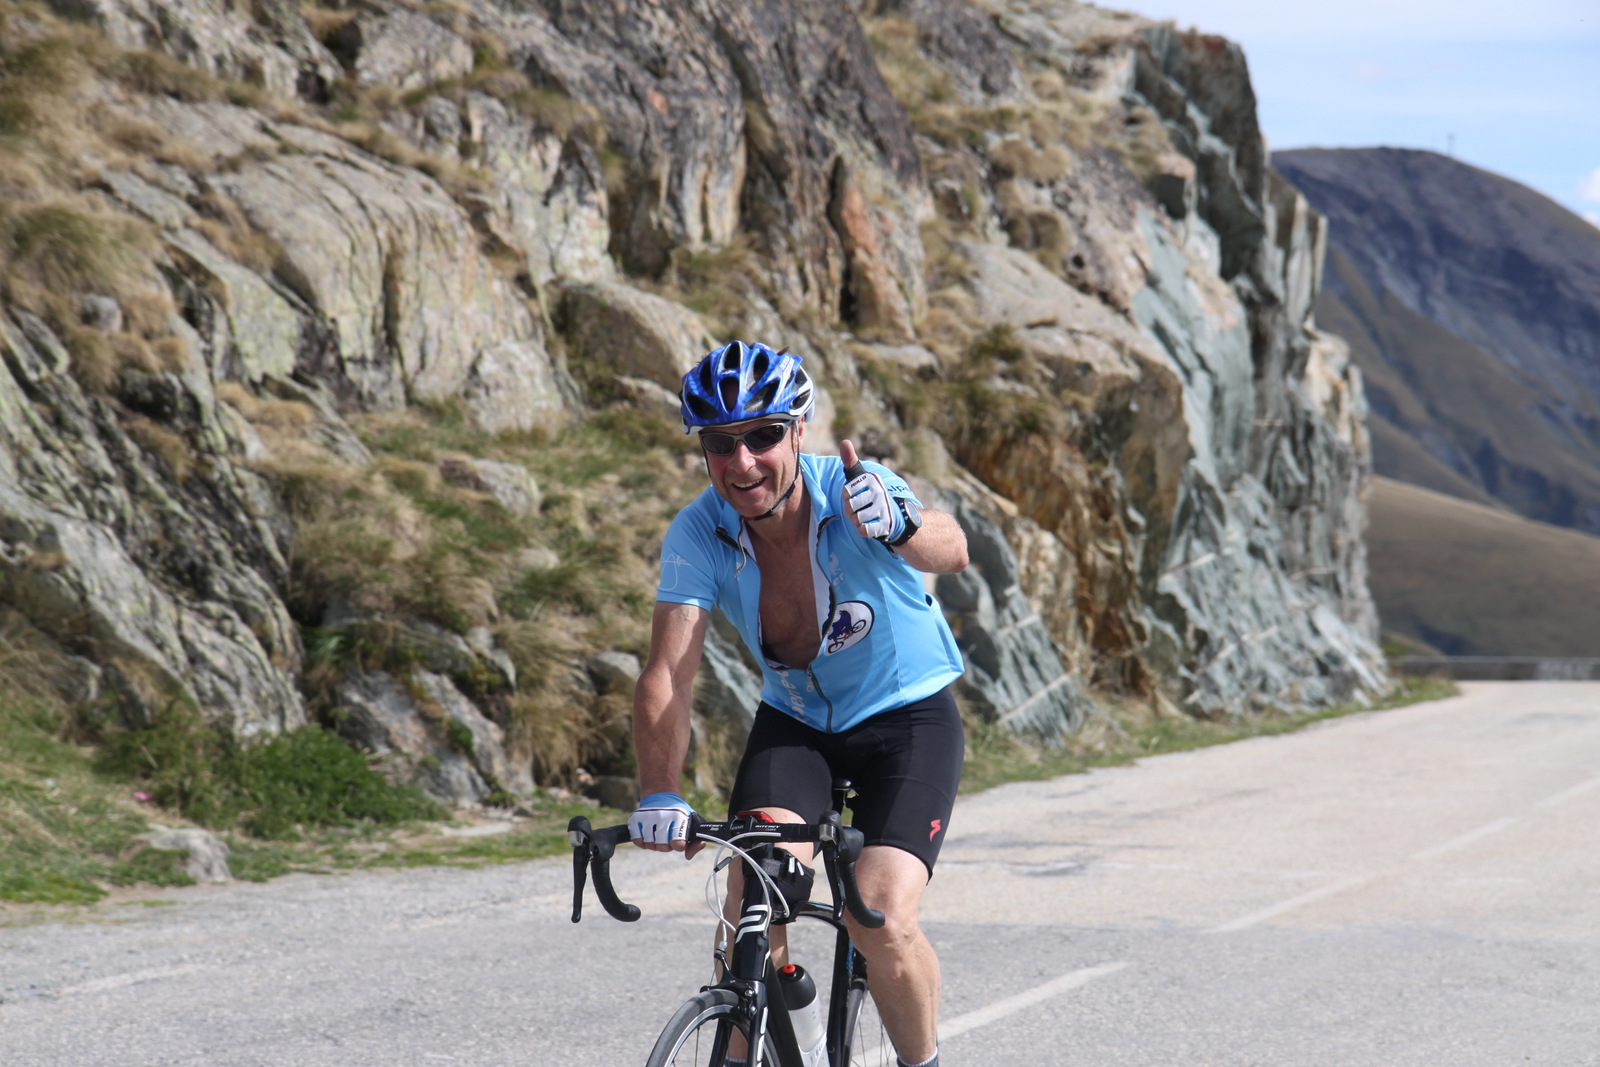 jerry gore road biking